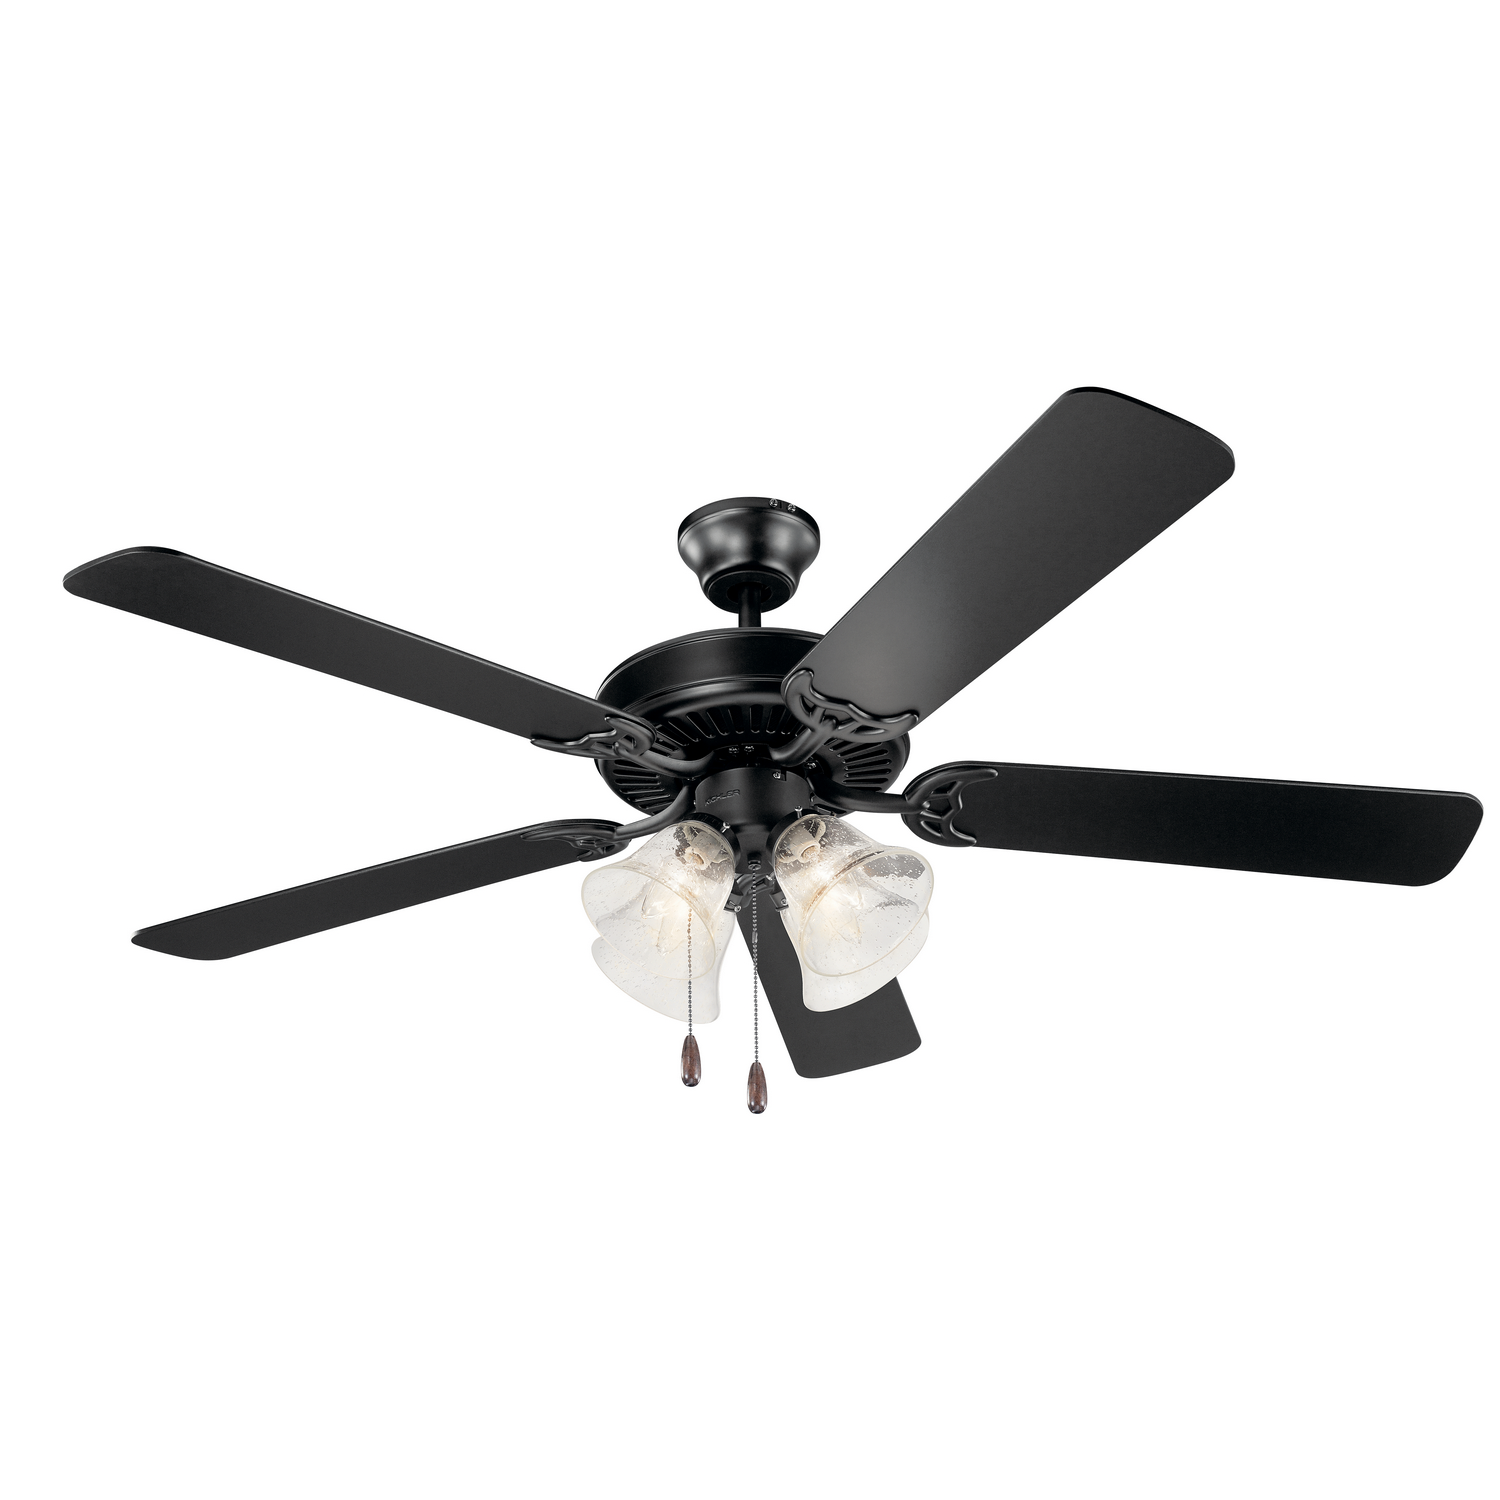 52 inchCeiling Fan from the Basics collection by Kichler 402SBK